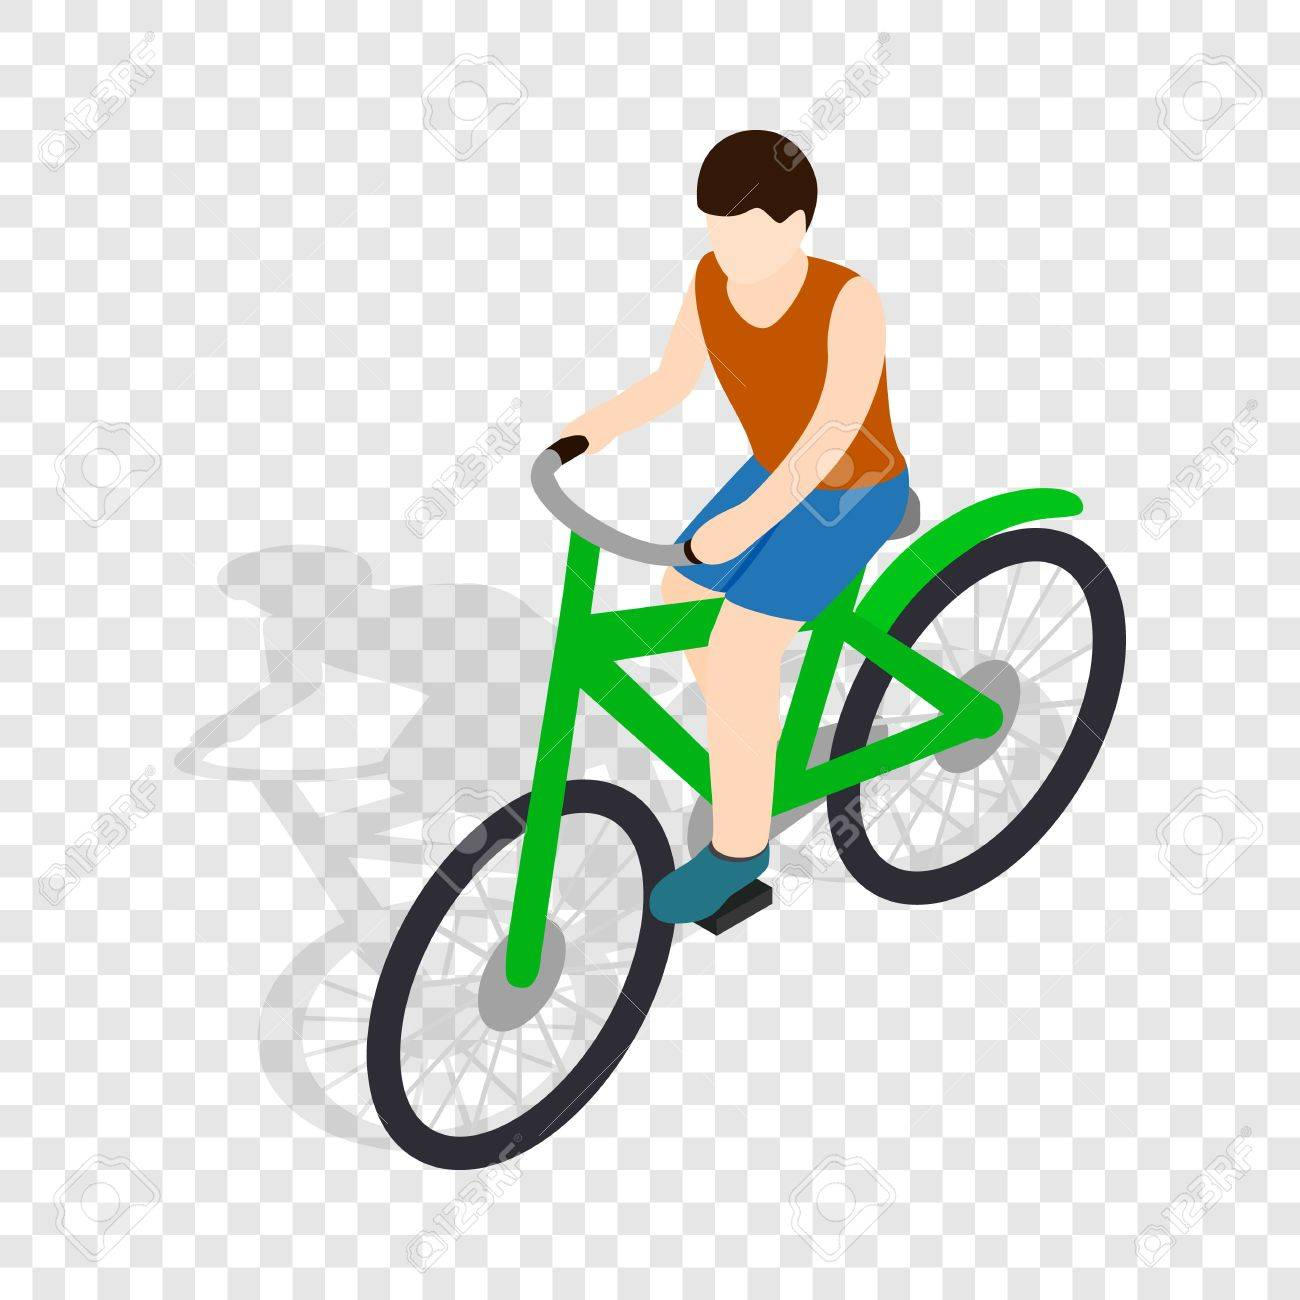 cyclist riding a bike isometric icon 3d on a transparent background